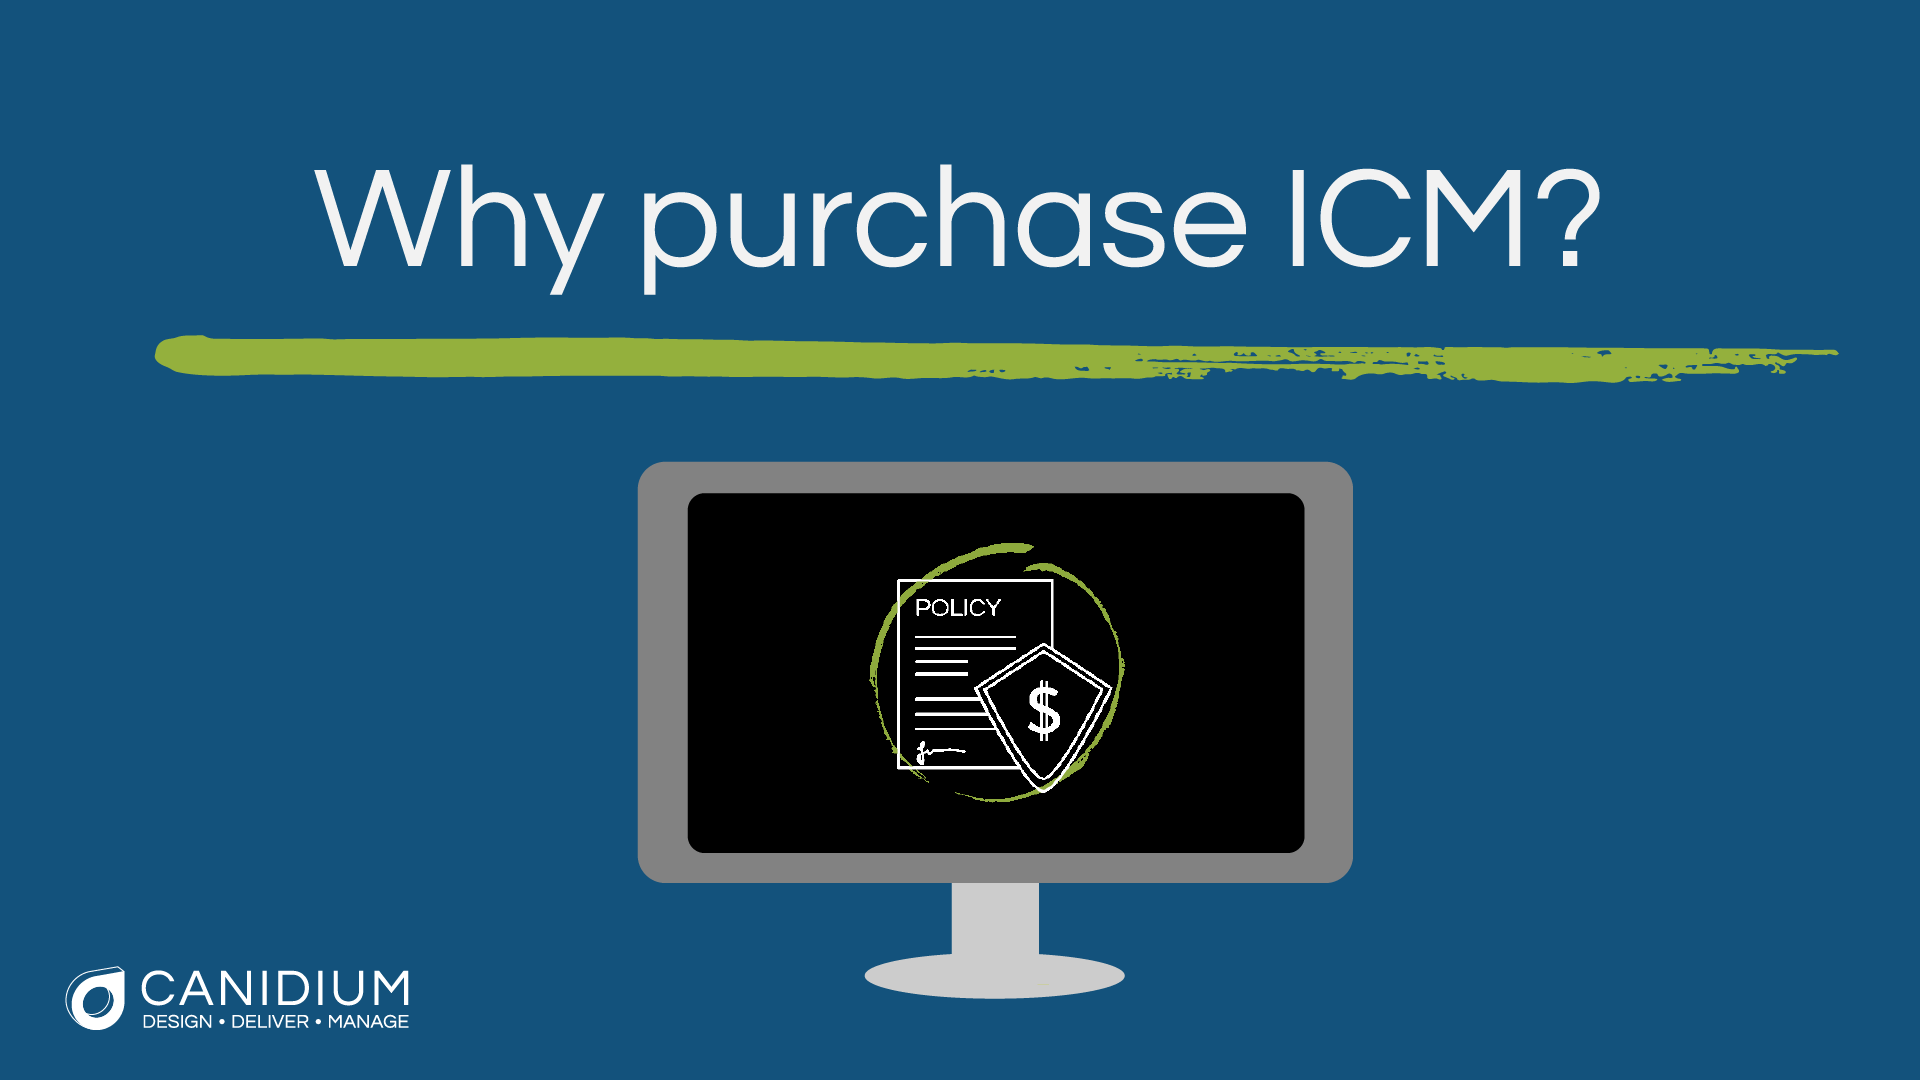 Why Purchase ICM?